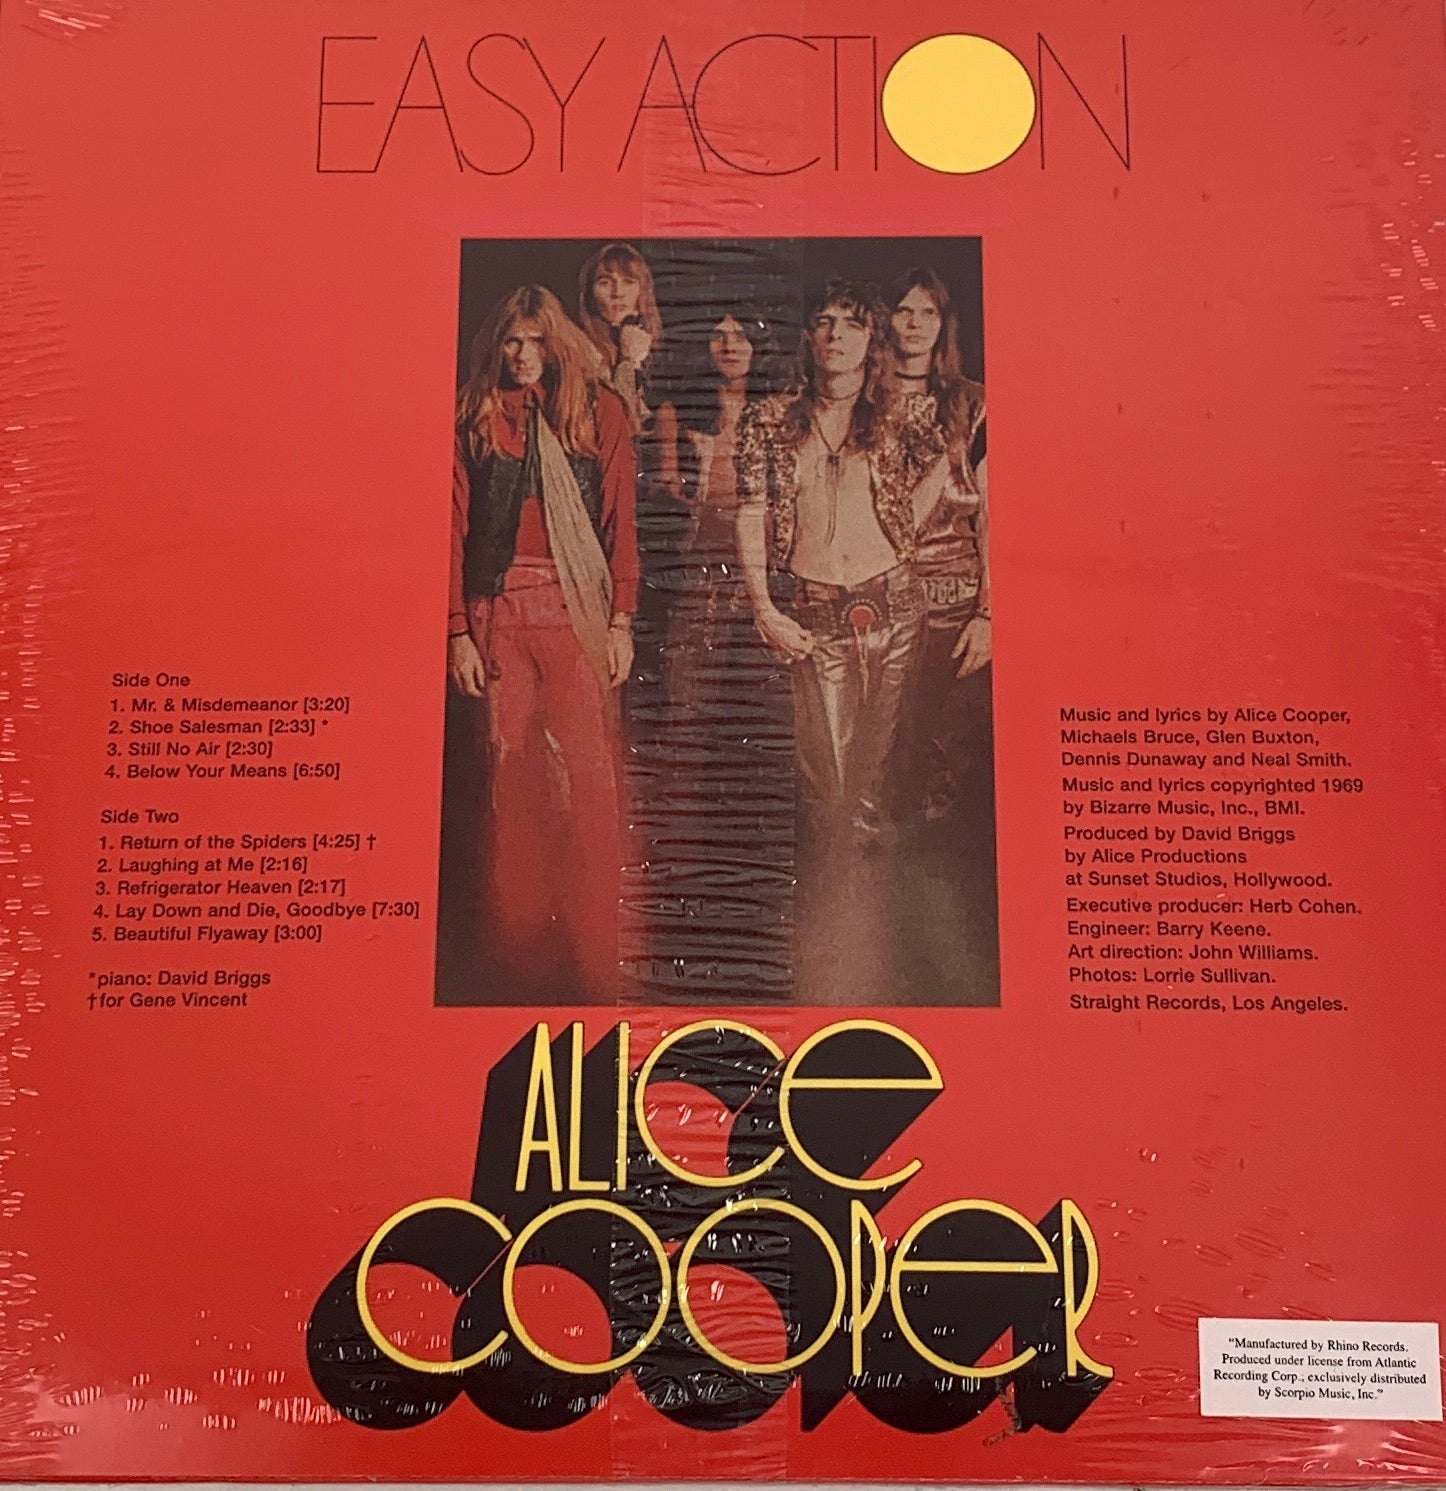 Alice Cooper - Easy Action LP